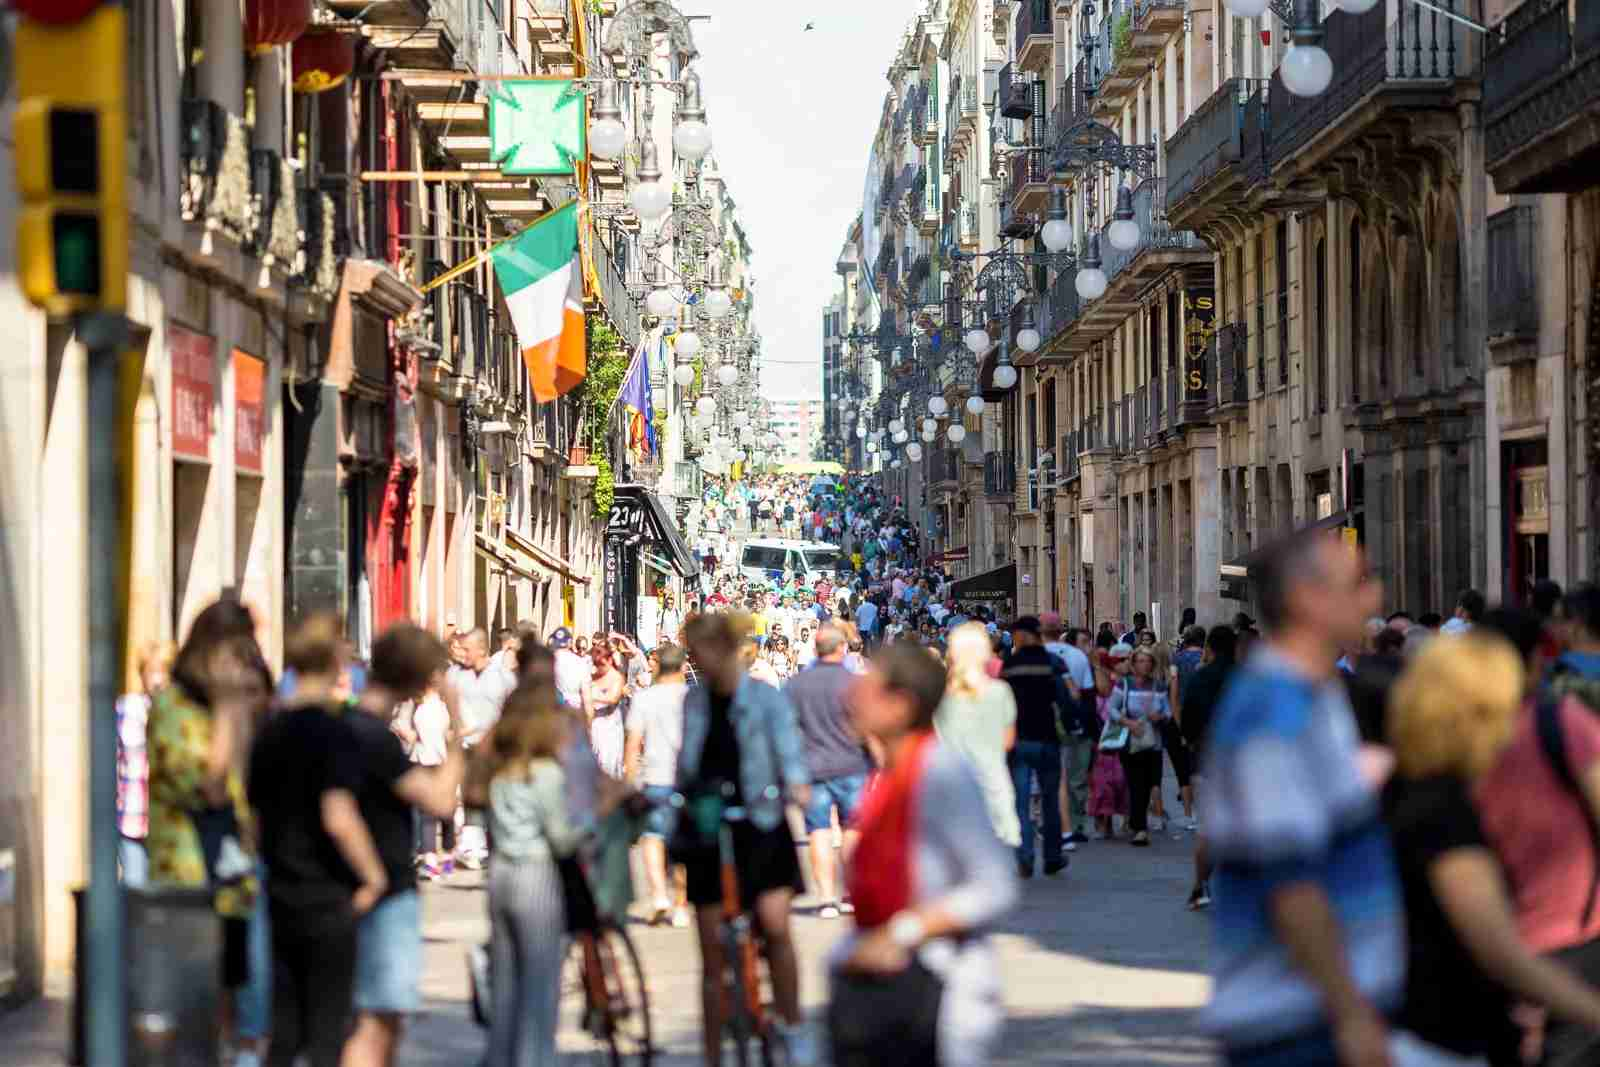 Day scene at Las Ramblas close to Plaça de Catalunya at rush hour. (Photo via Getty Images)